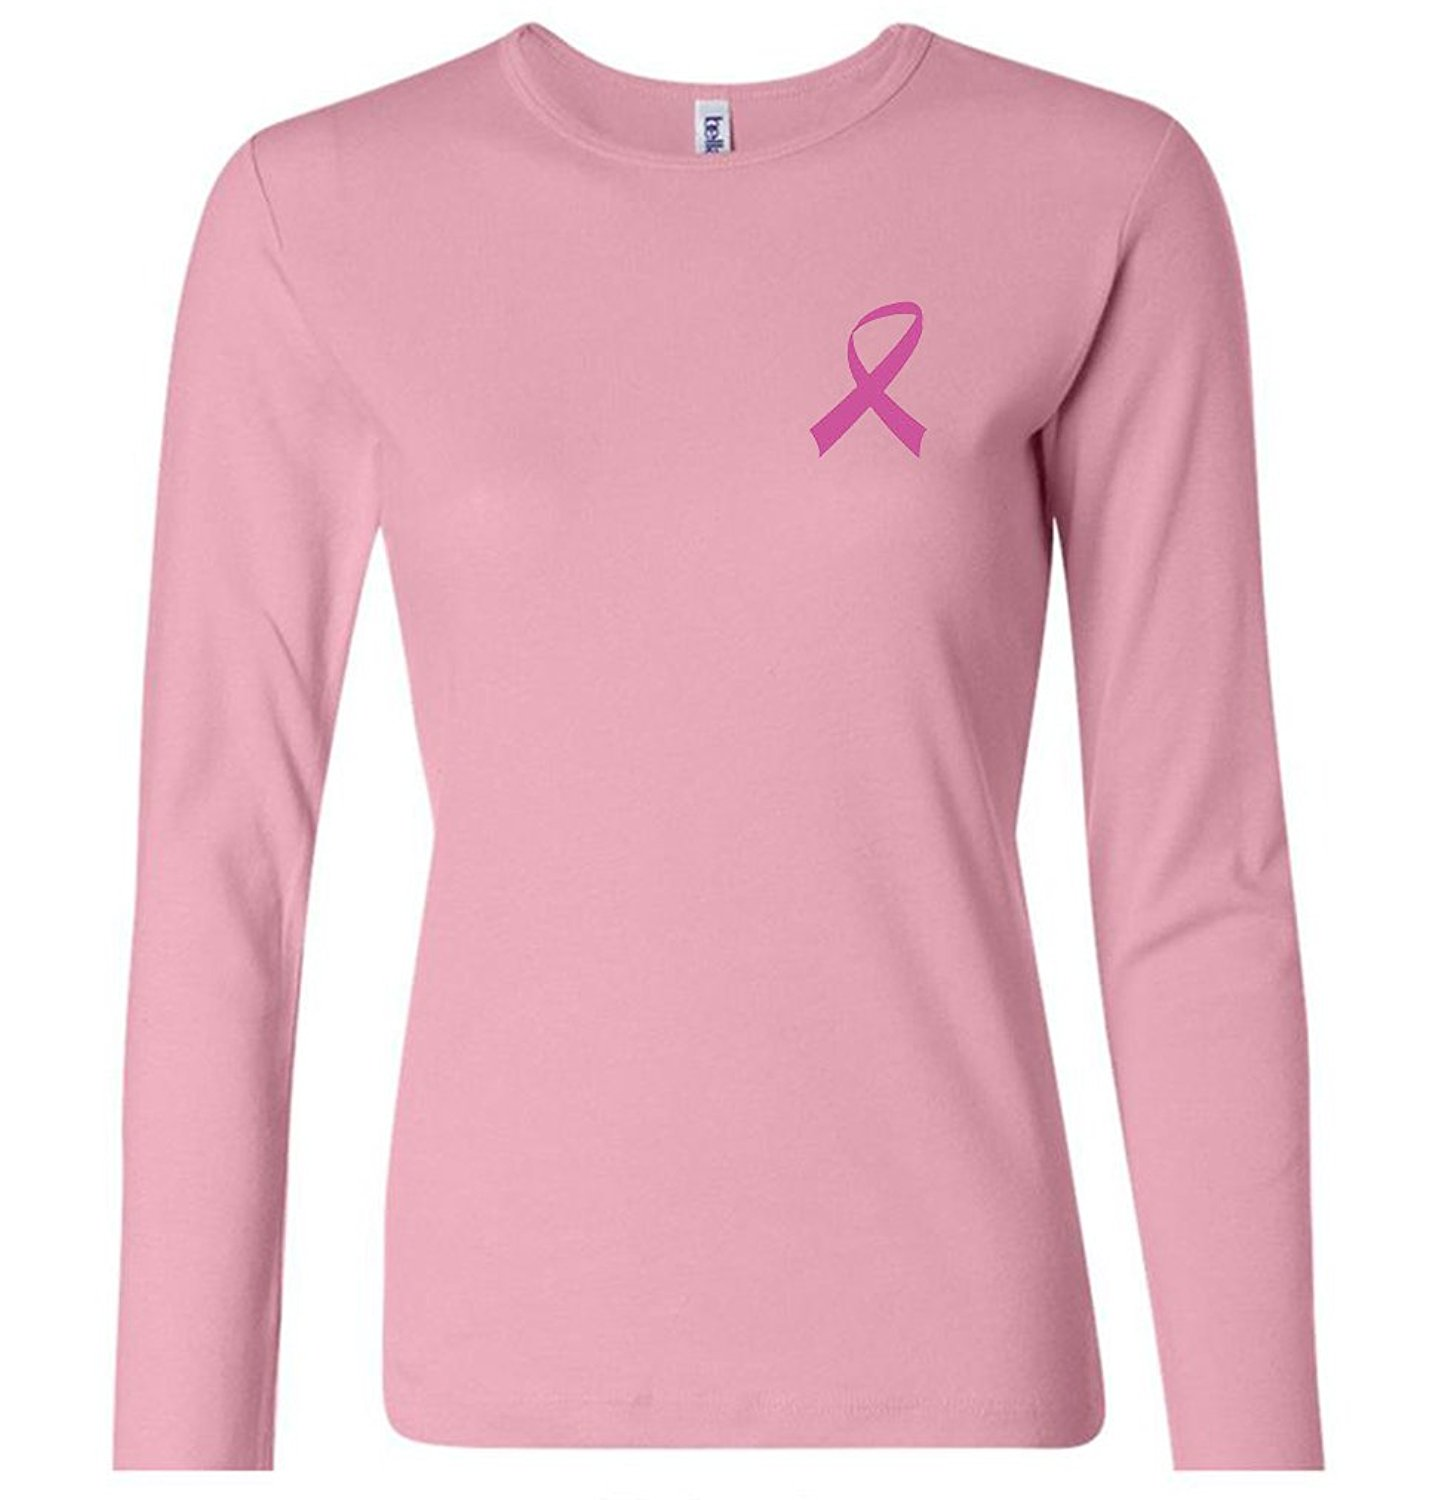 Womens Cancer Awareness Ribbon Cotton Tee - Pink